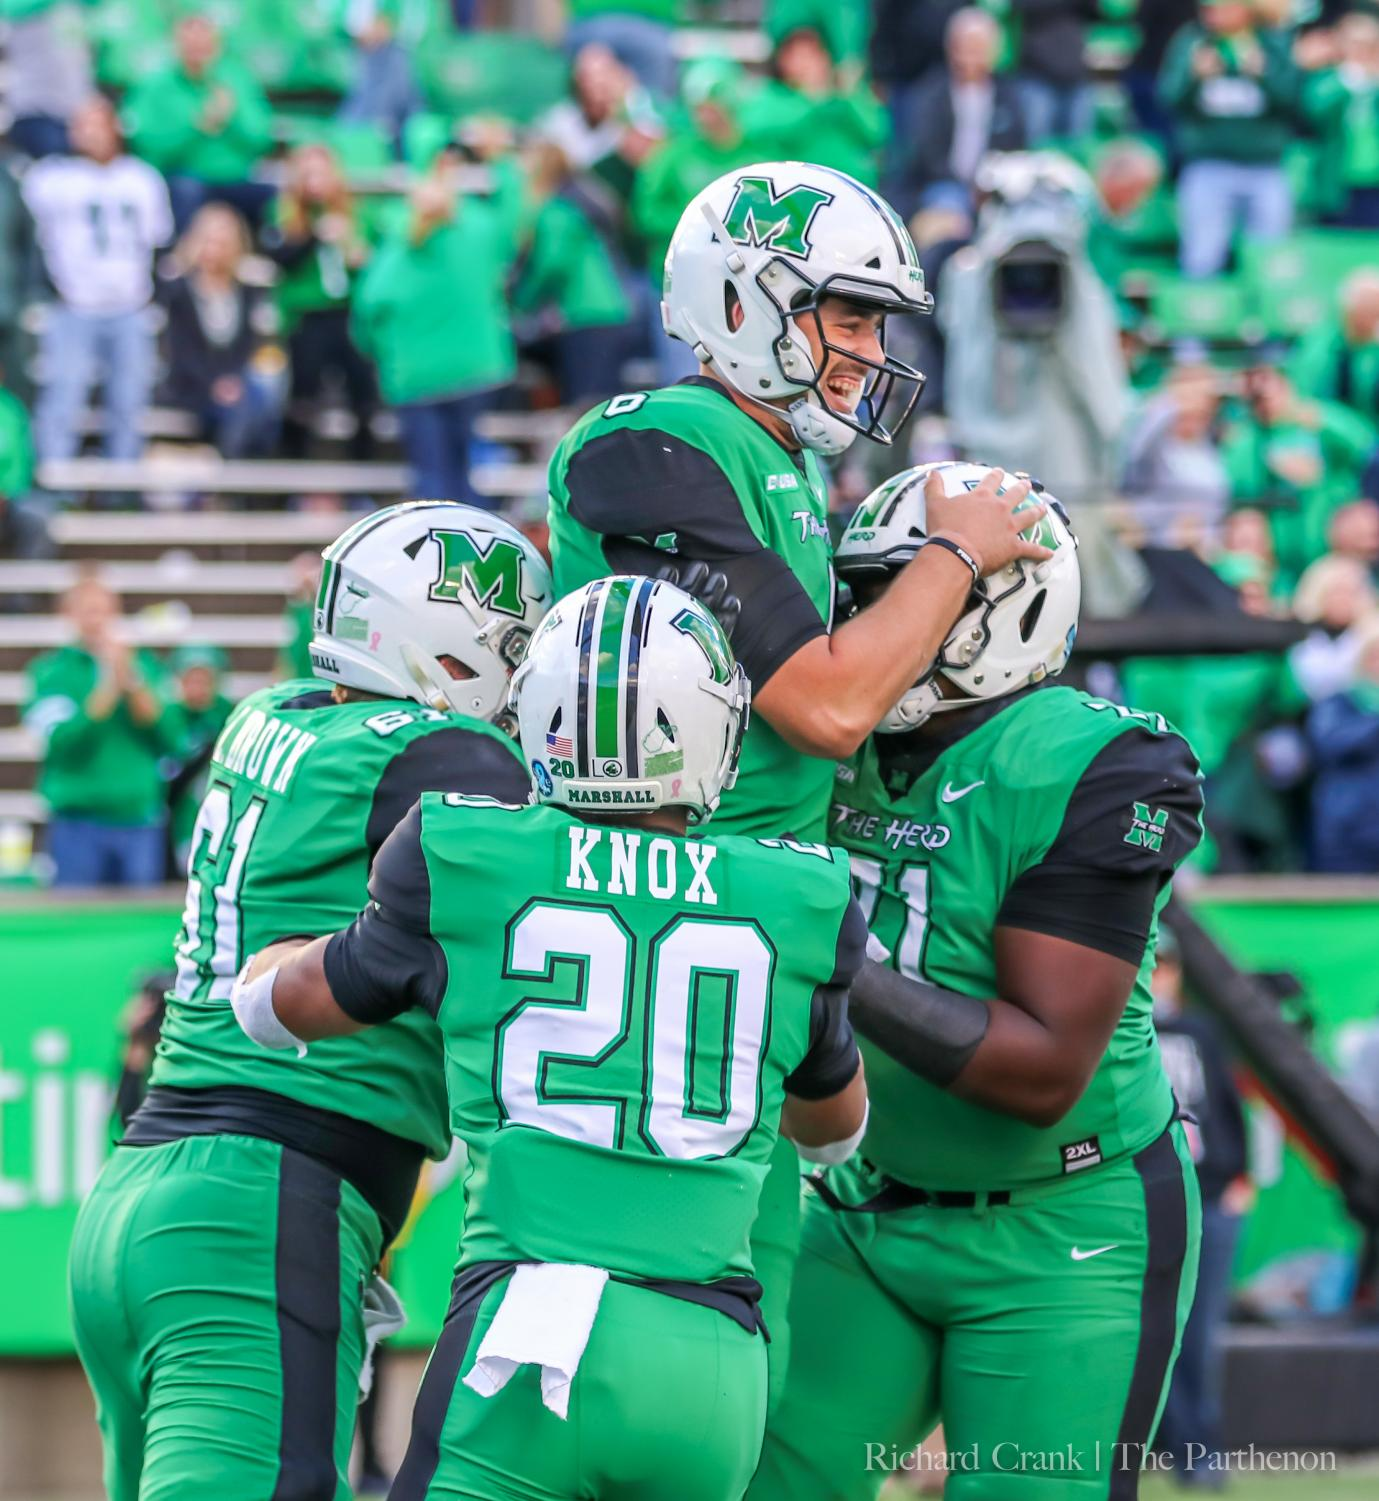 Marshall redshirt running back Brenden Knox (#20) joins a team celebration after a touchdown in Marshall's earlier home game against Western Kentucky. Knox has a career-high 22 rushes for 116 and a touchdown in his most-recent game against Charlotte.